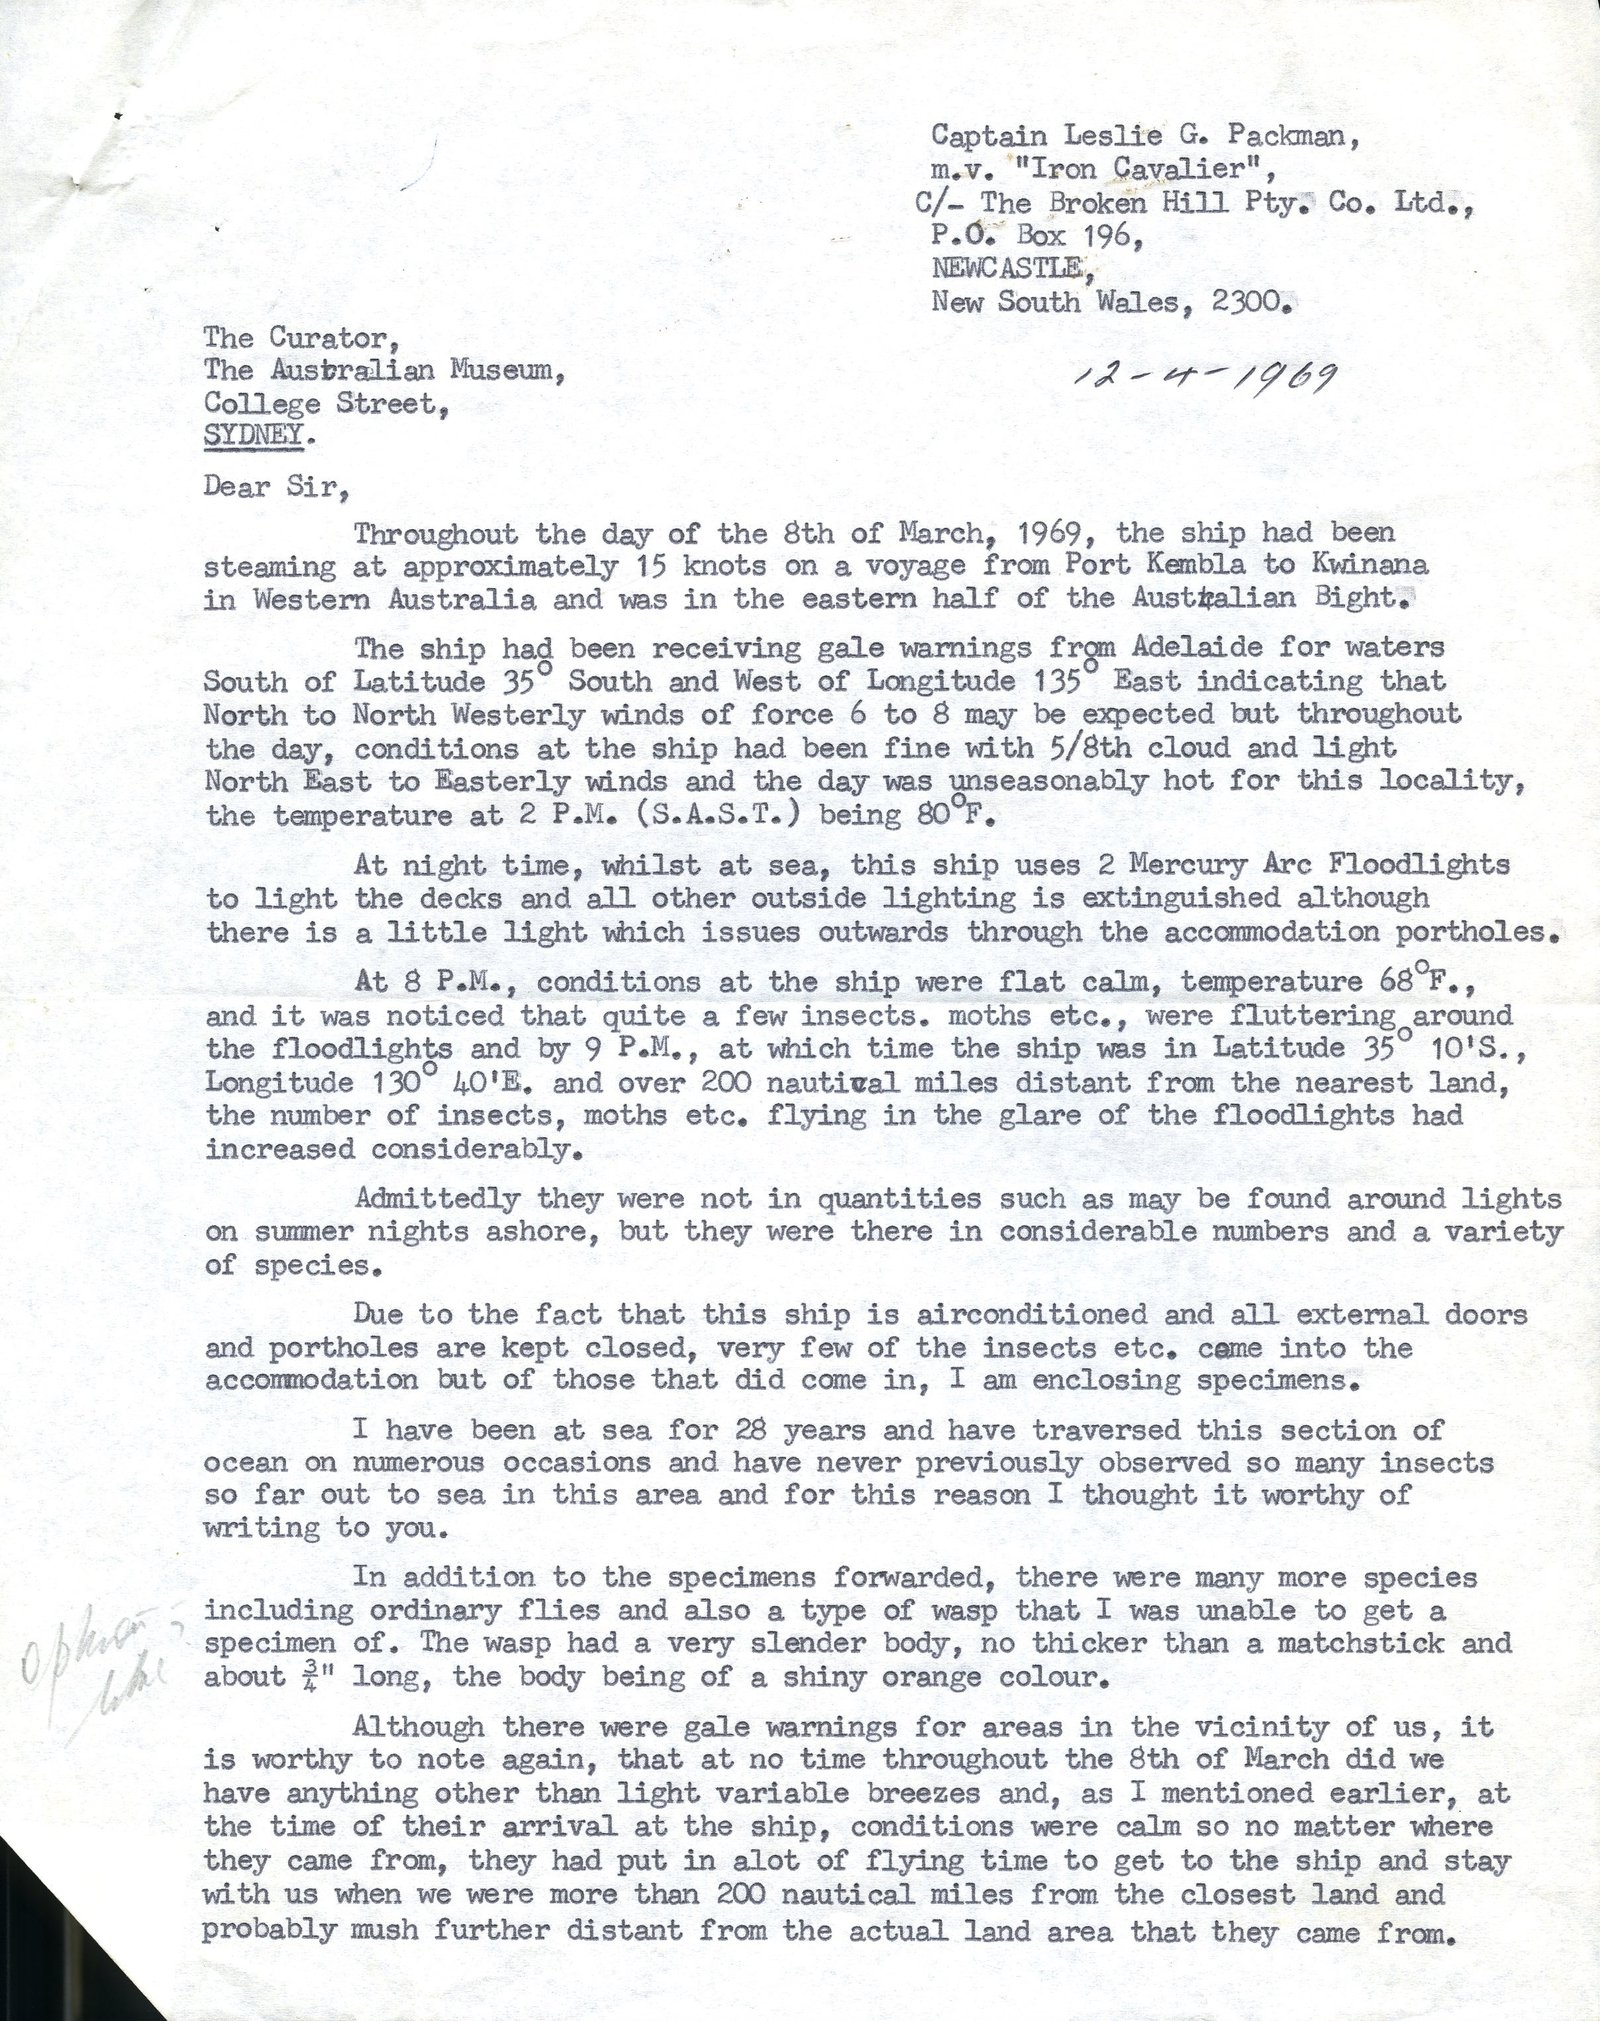 Packman enquiry, 1969. Page 1